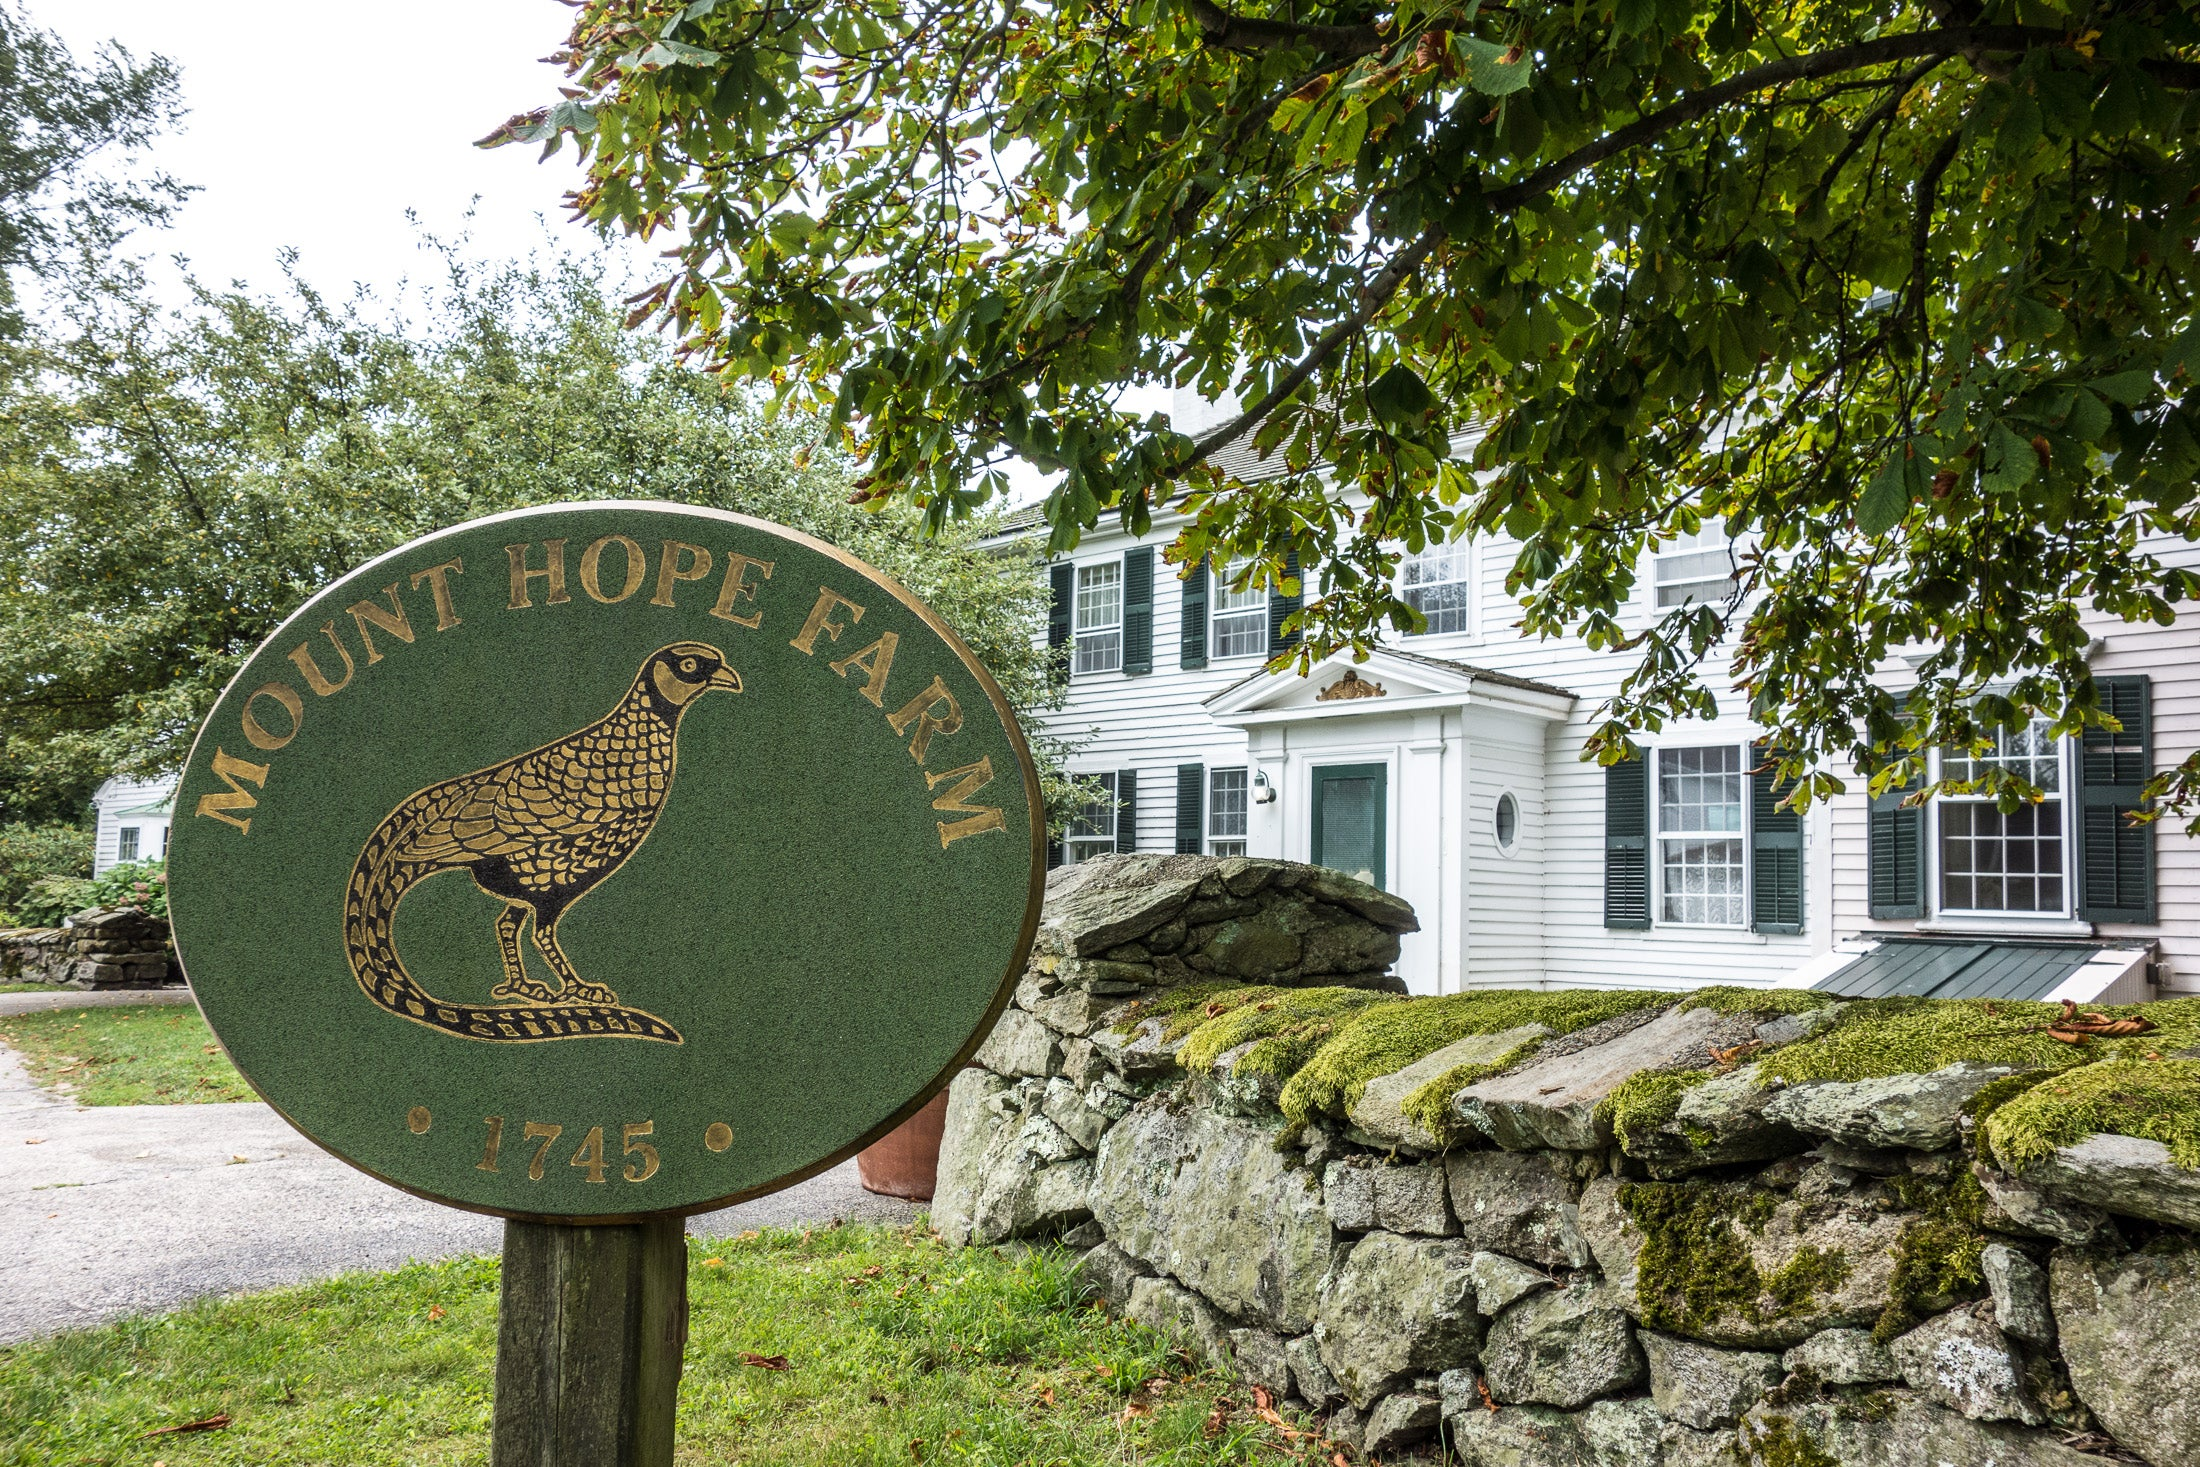 Mount Hope Farm (also known as Gov. William Bradford House) is an historic estate on Metacom Avenue in Bristol, Rhode Island.